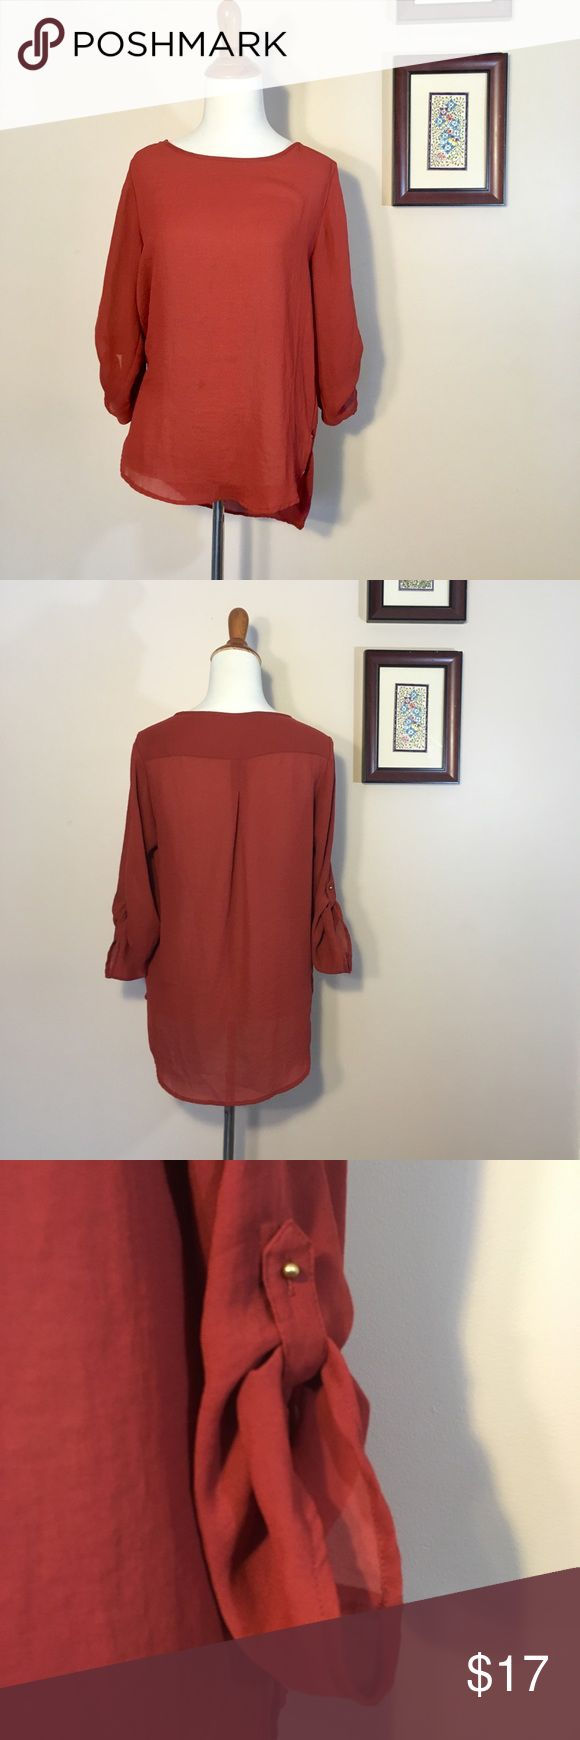 Zara Burnt Orange Chiffon Convertible Sleeve Top Size XS Zara Basic top with convertible sleeves and gold detailing. Semi sheer chiffon. Oversized so could fit a small. Small snag as shown i photos. Great career piece or could be cute for a night out! Color is more like second picture Zara Tops Blouses